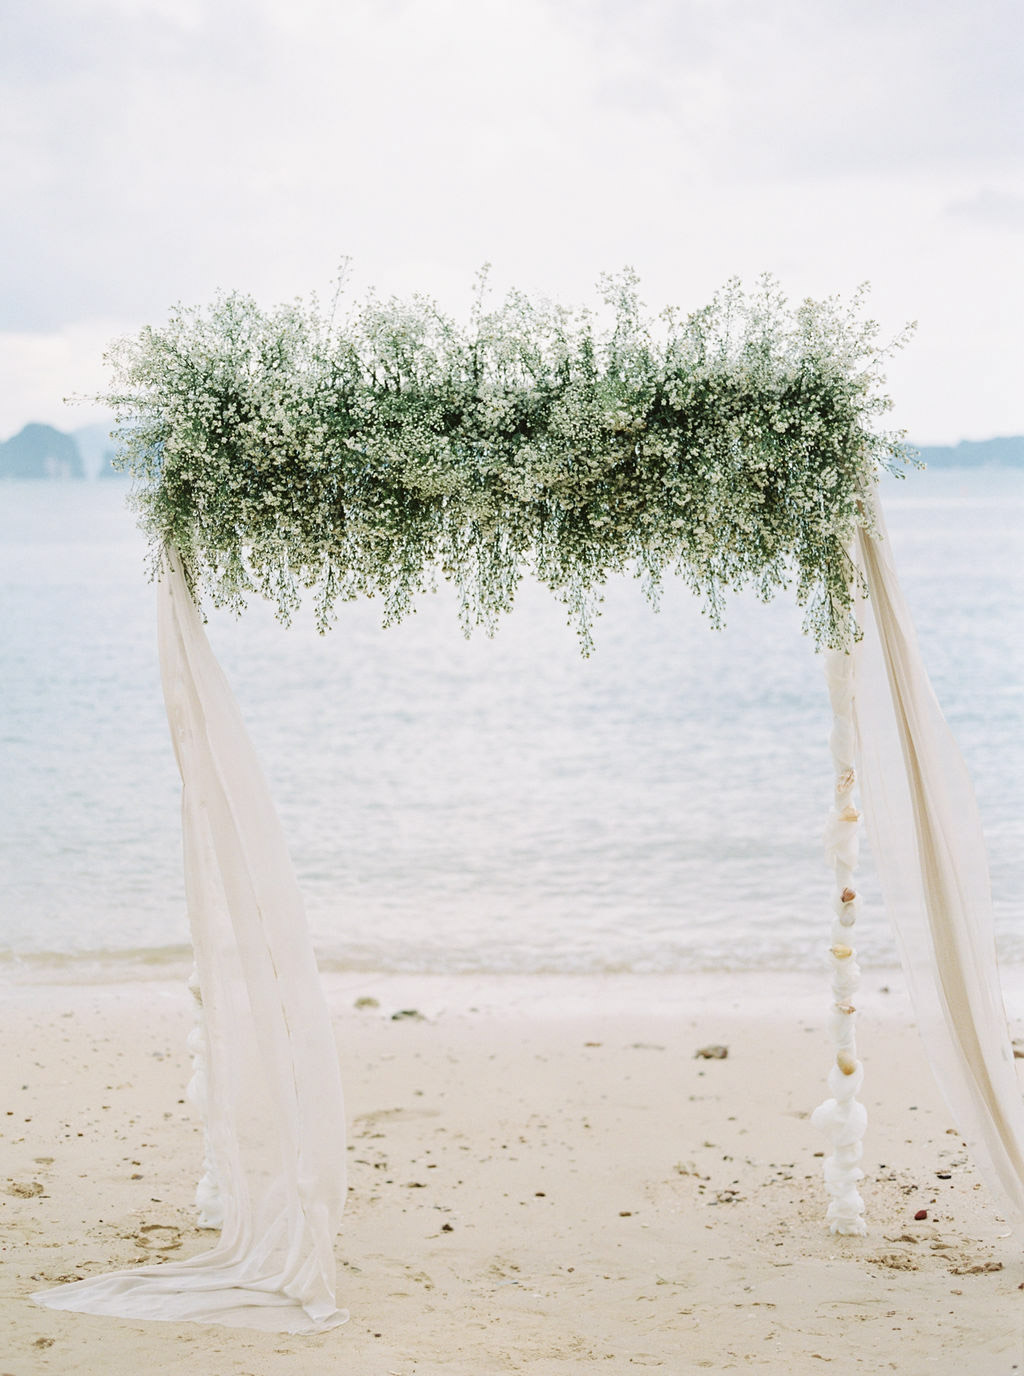 Thailand Wedding Venues Destination Koh Yao Noi By Fine Art Film Wedding Photographer Sheri McMahon-00017.jpg